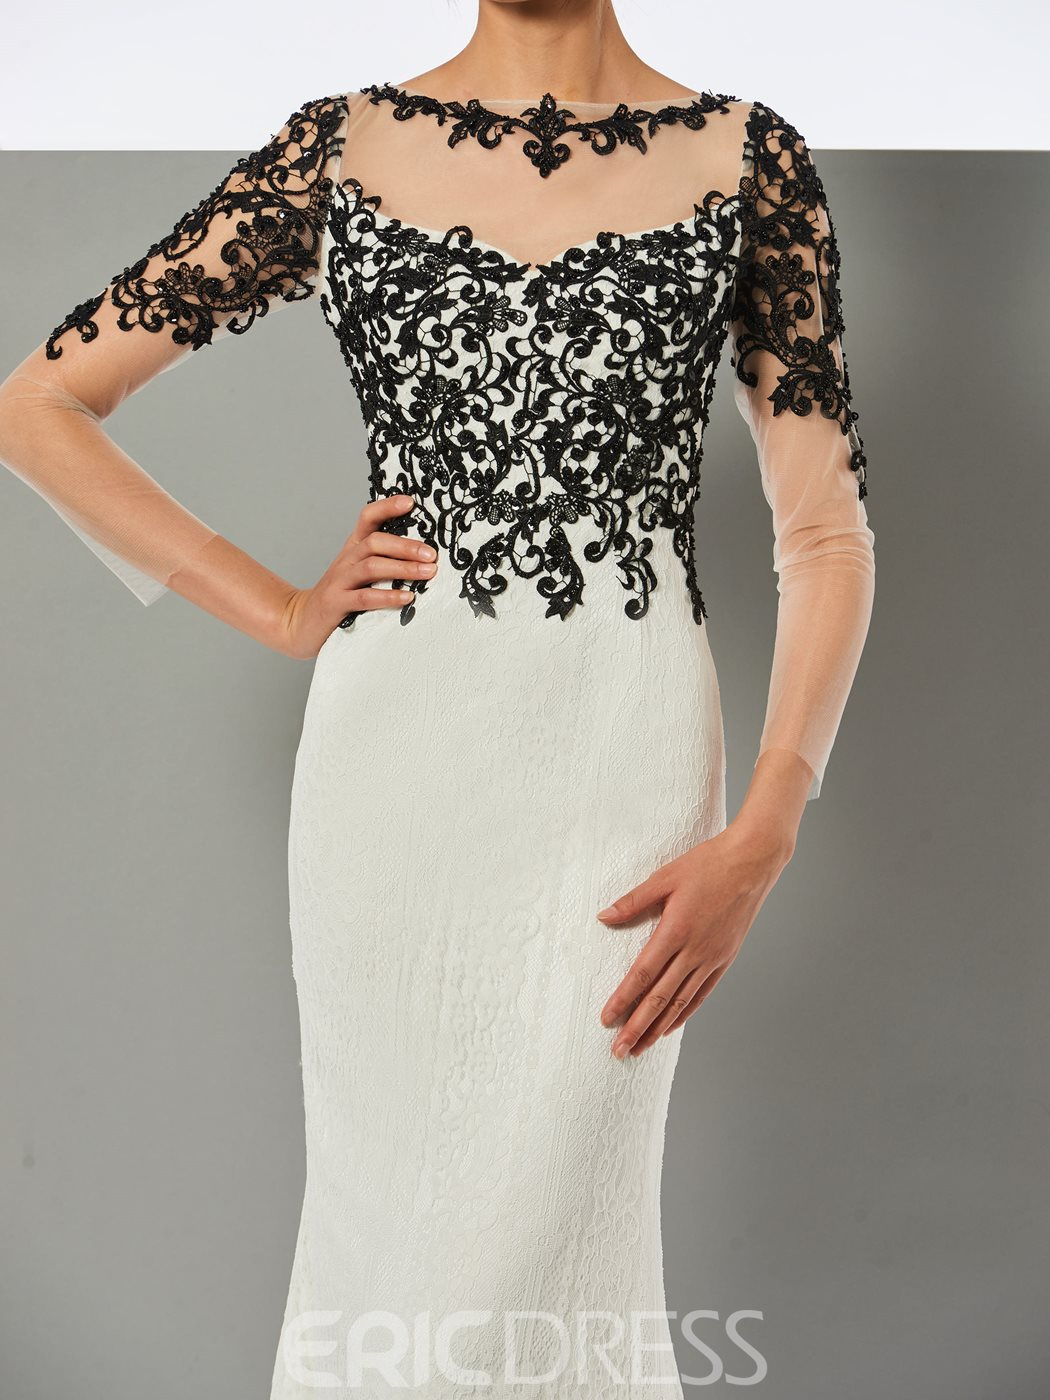 Ericdress Long Sleeve Bateau Neck Lace Applique Mermaid Evening Dress